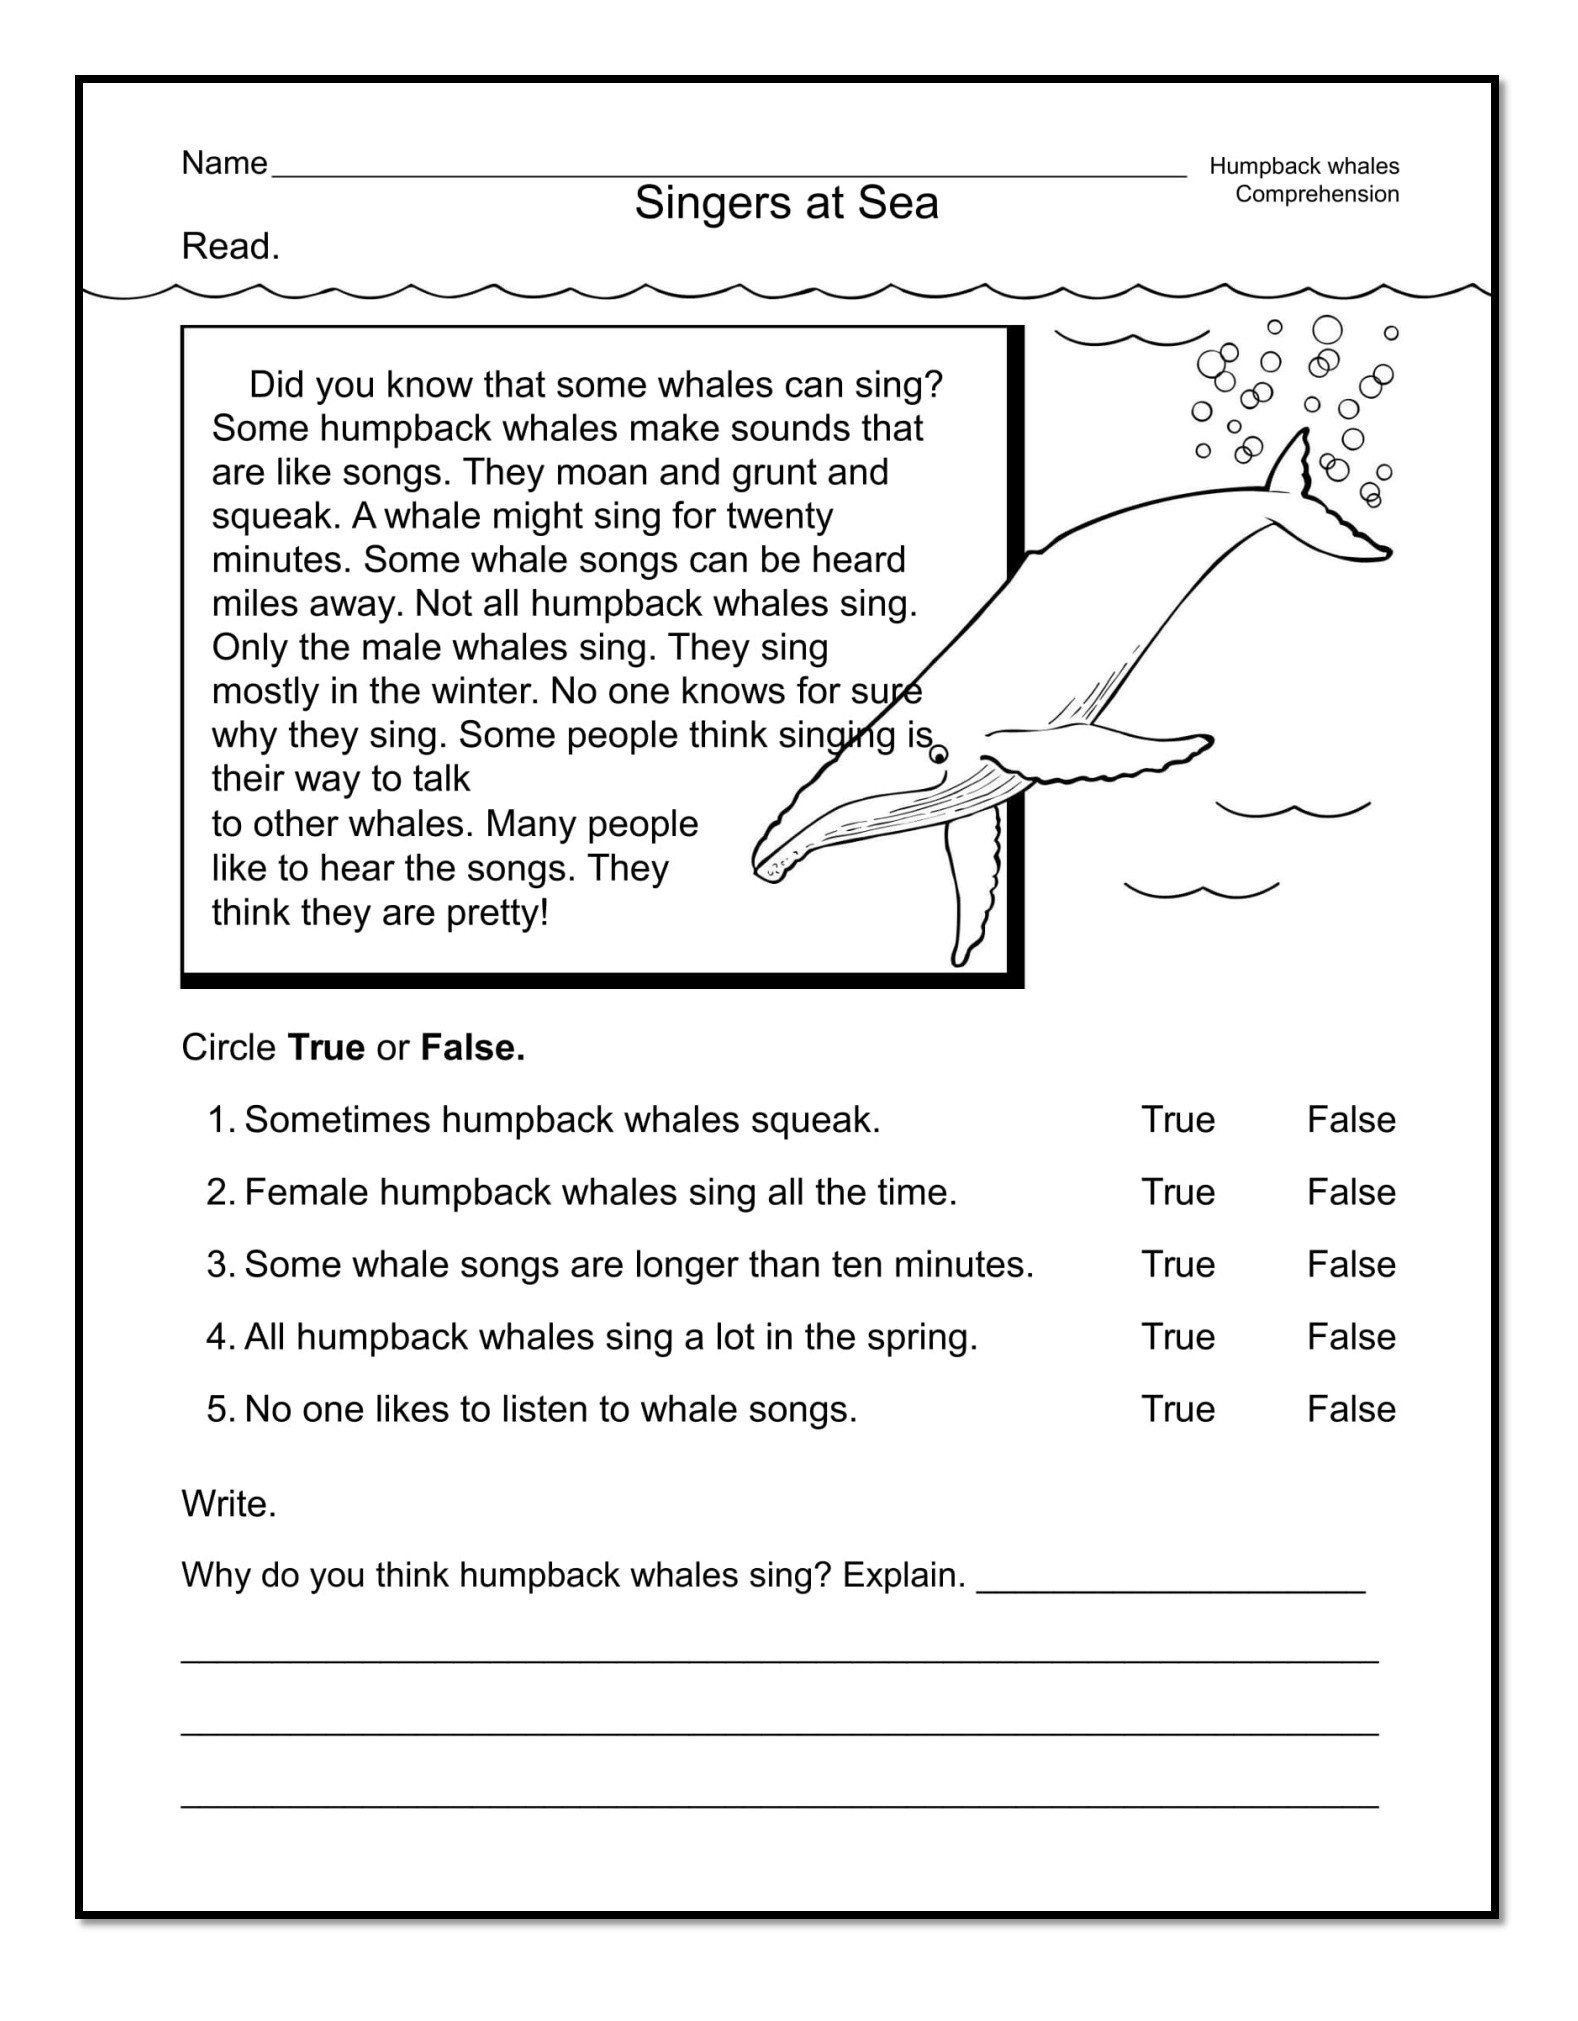 Comprehension Worksheets for First Grade Good Examples 1st Grade Worksheets Free Download